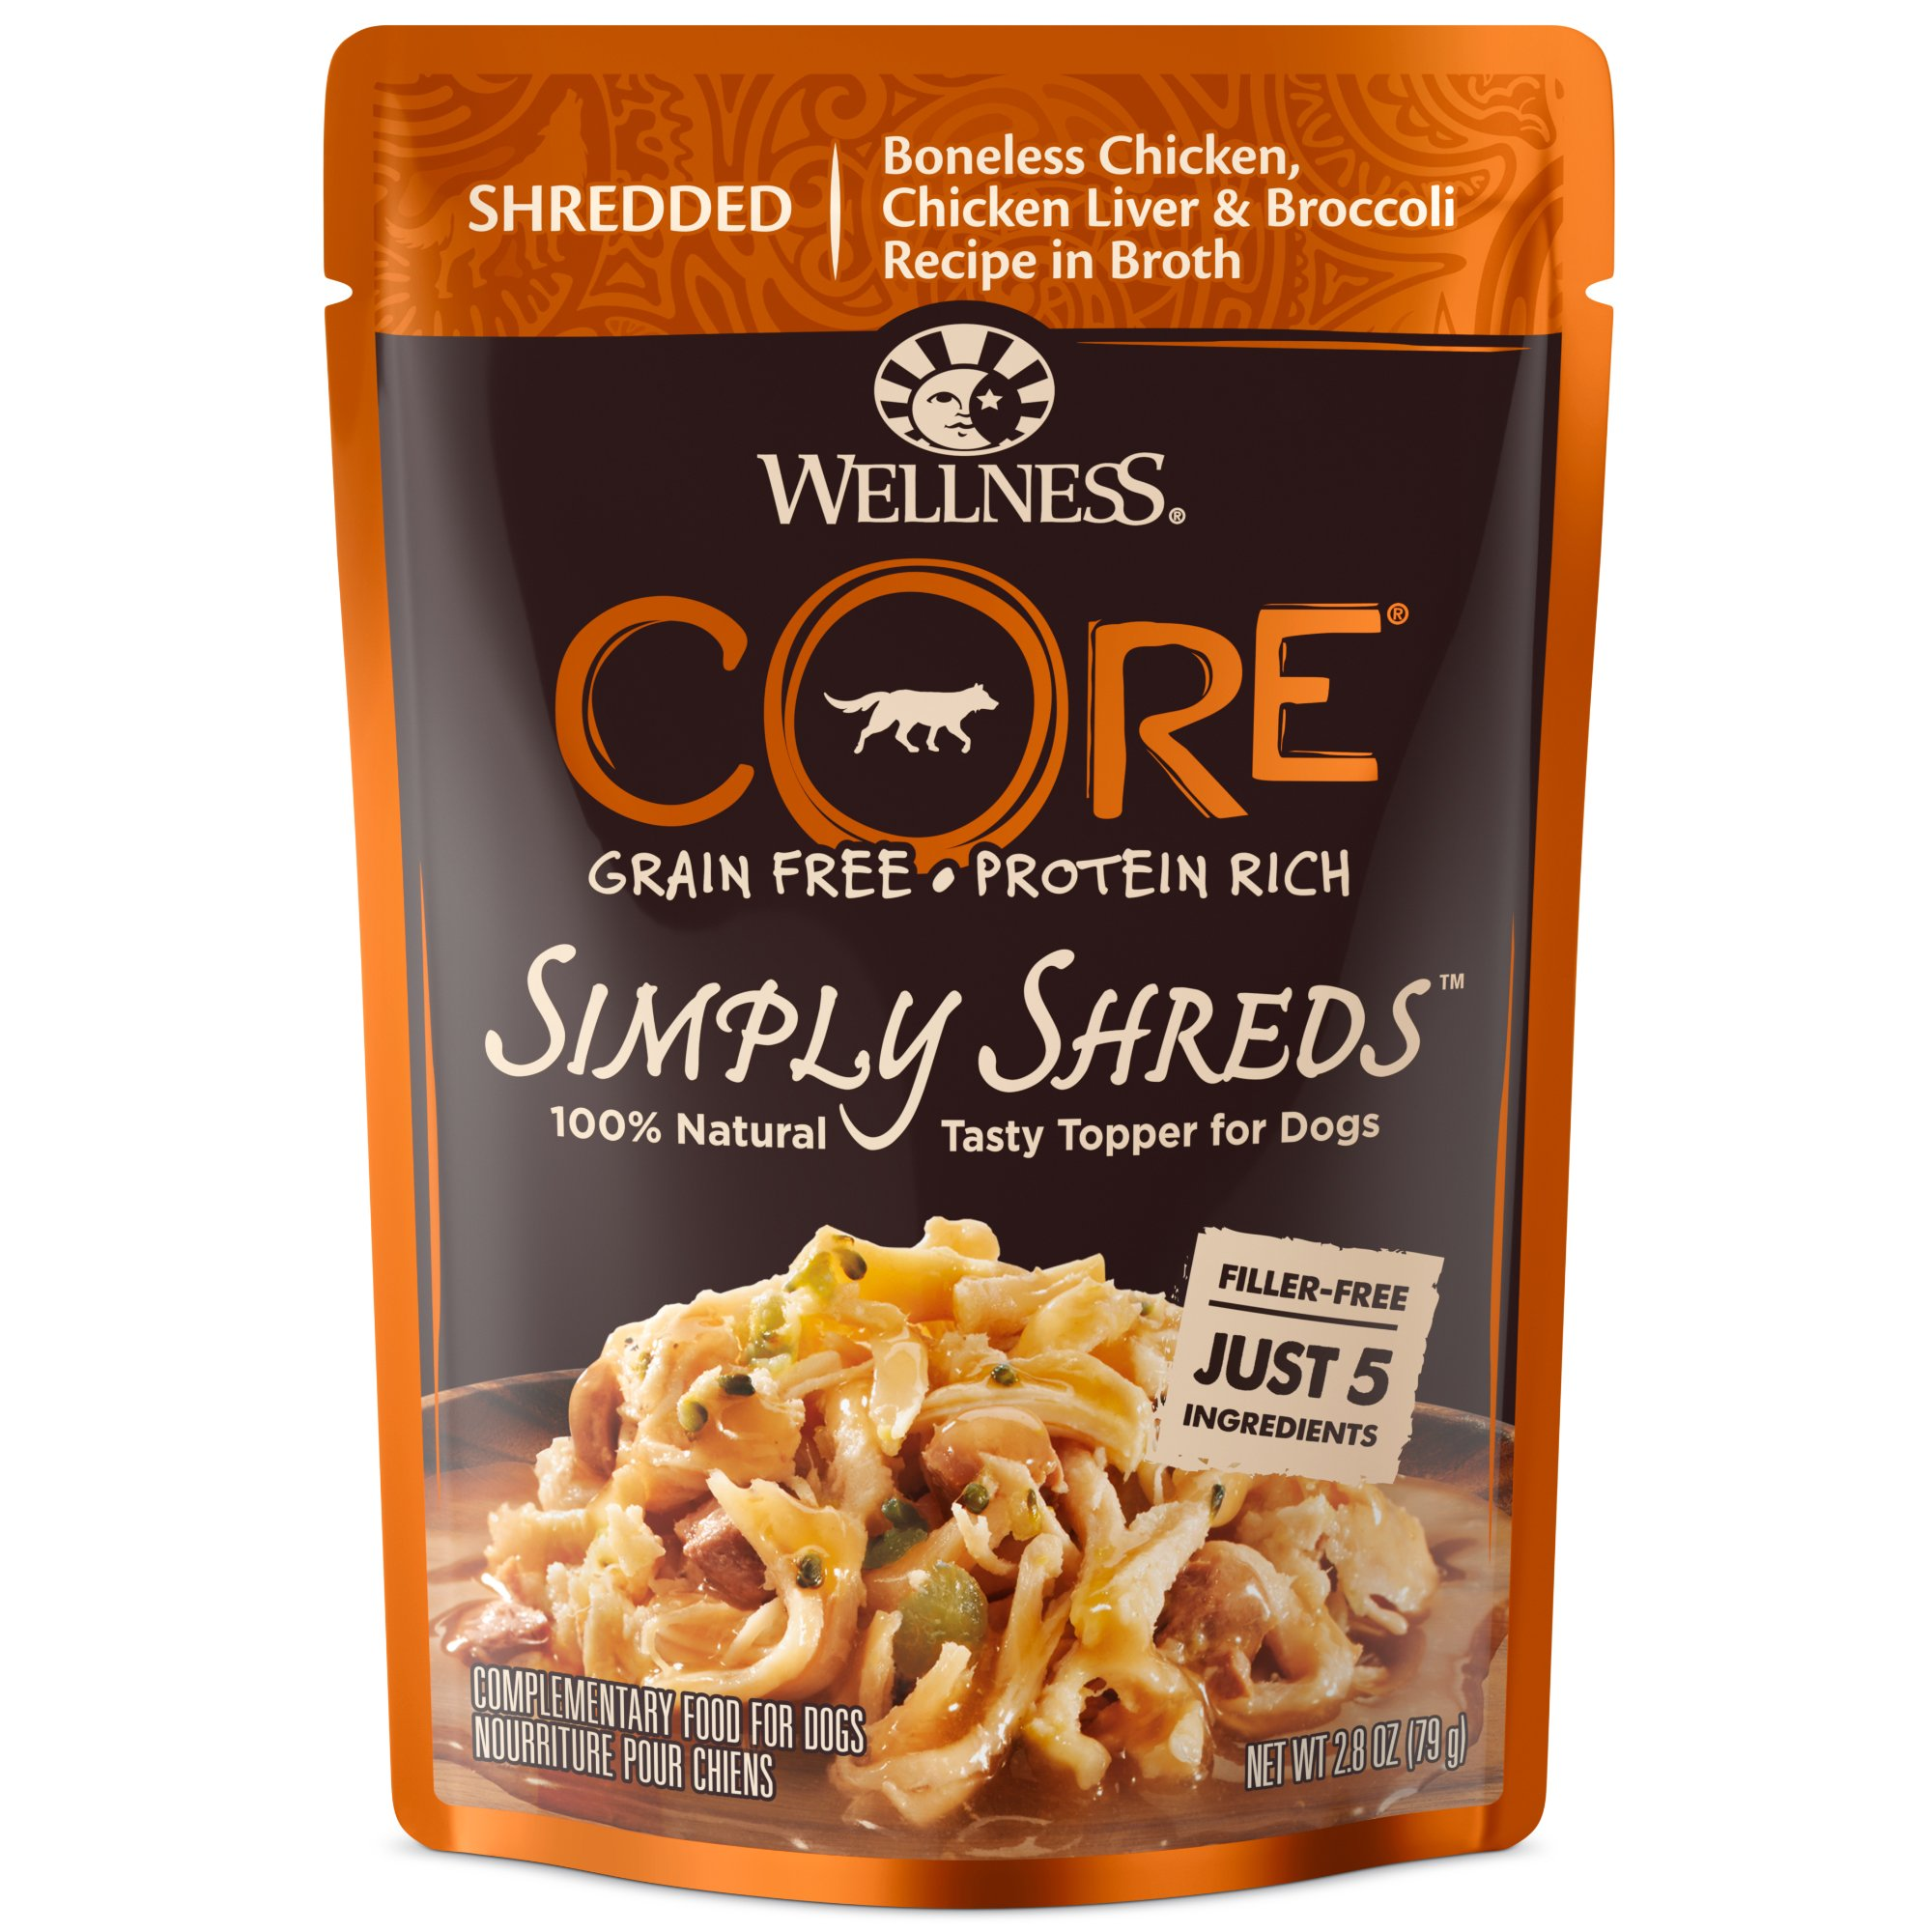 Wellness Core Simply Shreds Natural Grain Free Wet Dog Food Mixer Or Topper, Chicken, Chicken Liver & Broccoli, 2.8-Ounce Pouch, (Pack Of 12) by Wellness Natural Pet Food